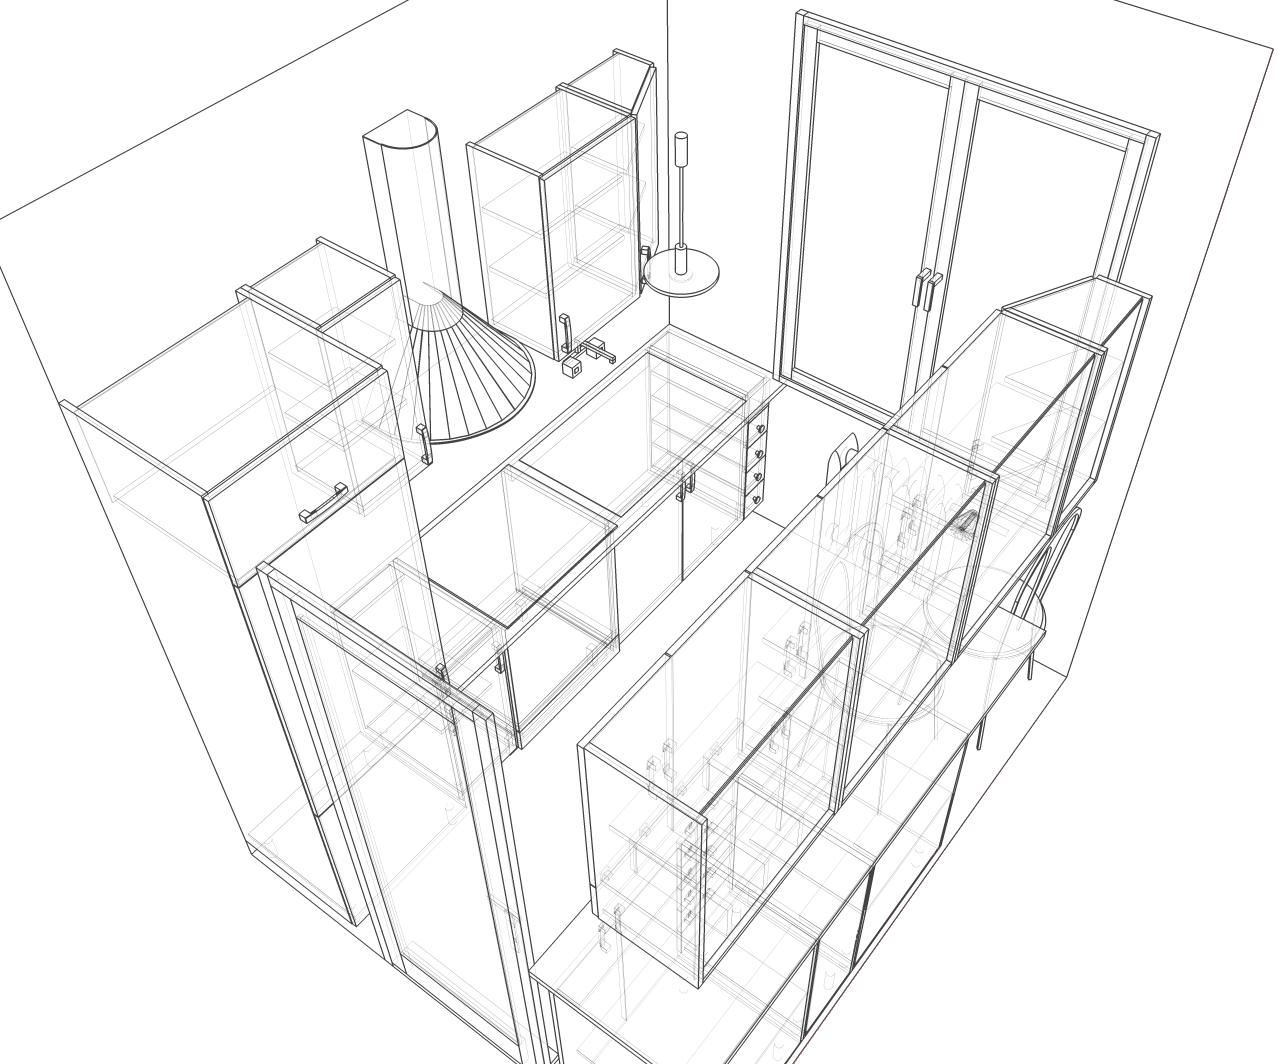 Kitchen perspective drawing - File Small Kitchen Perspective Sketch Png